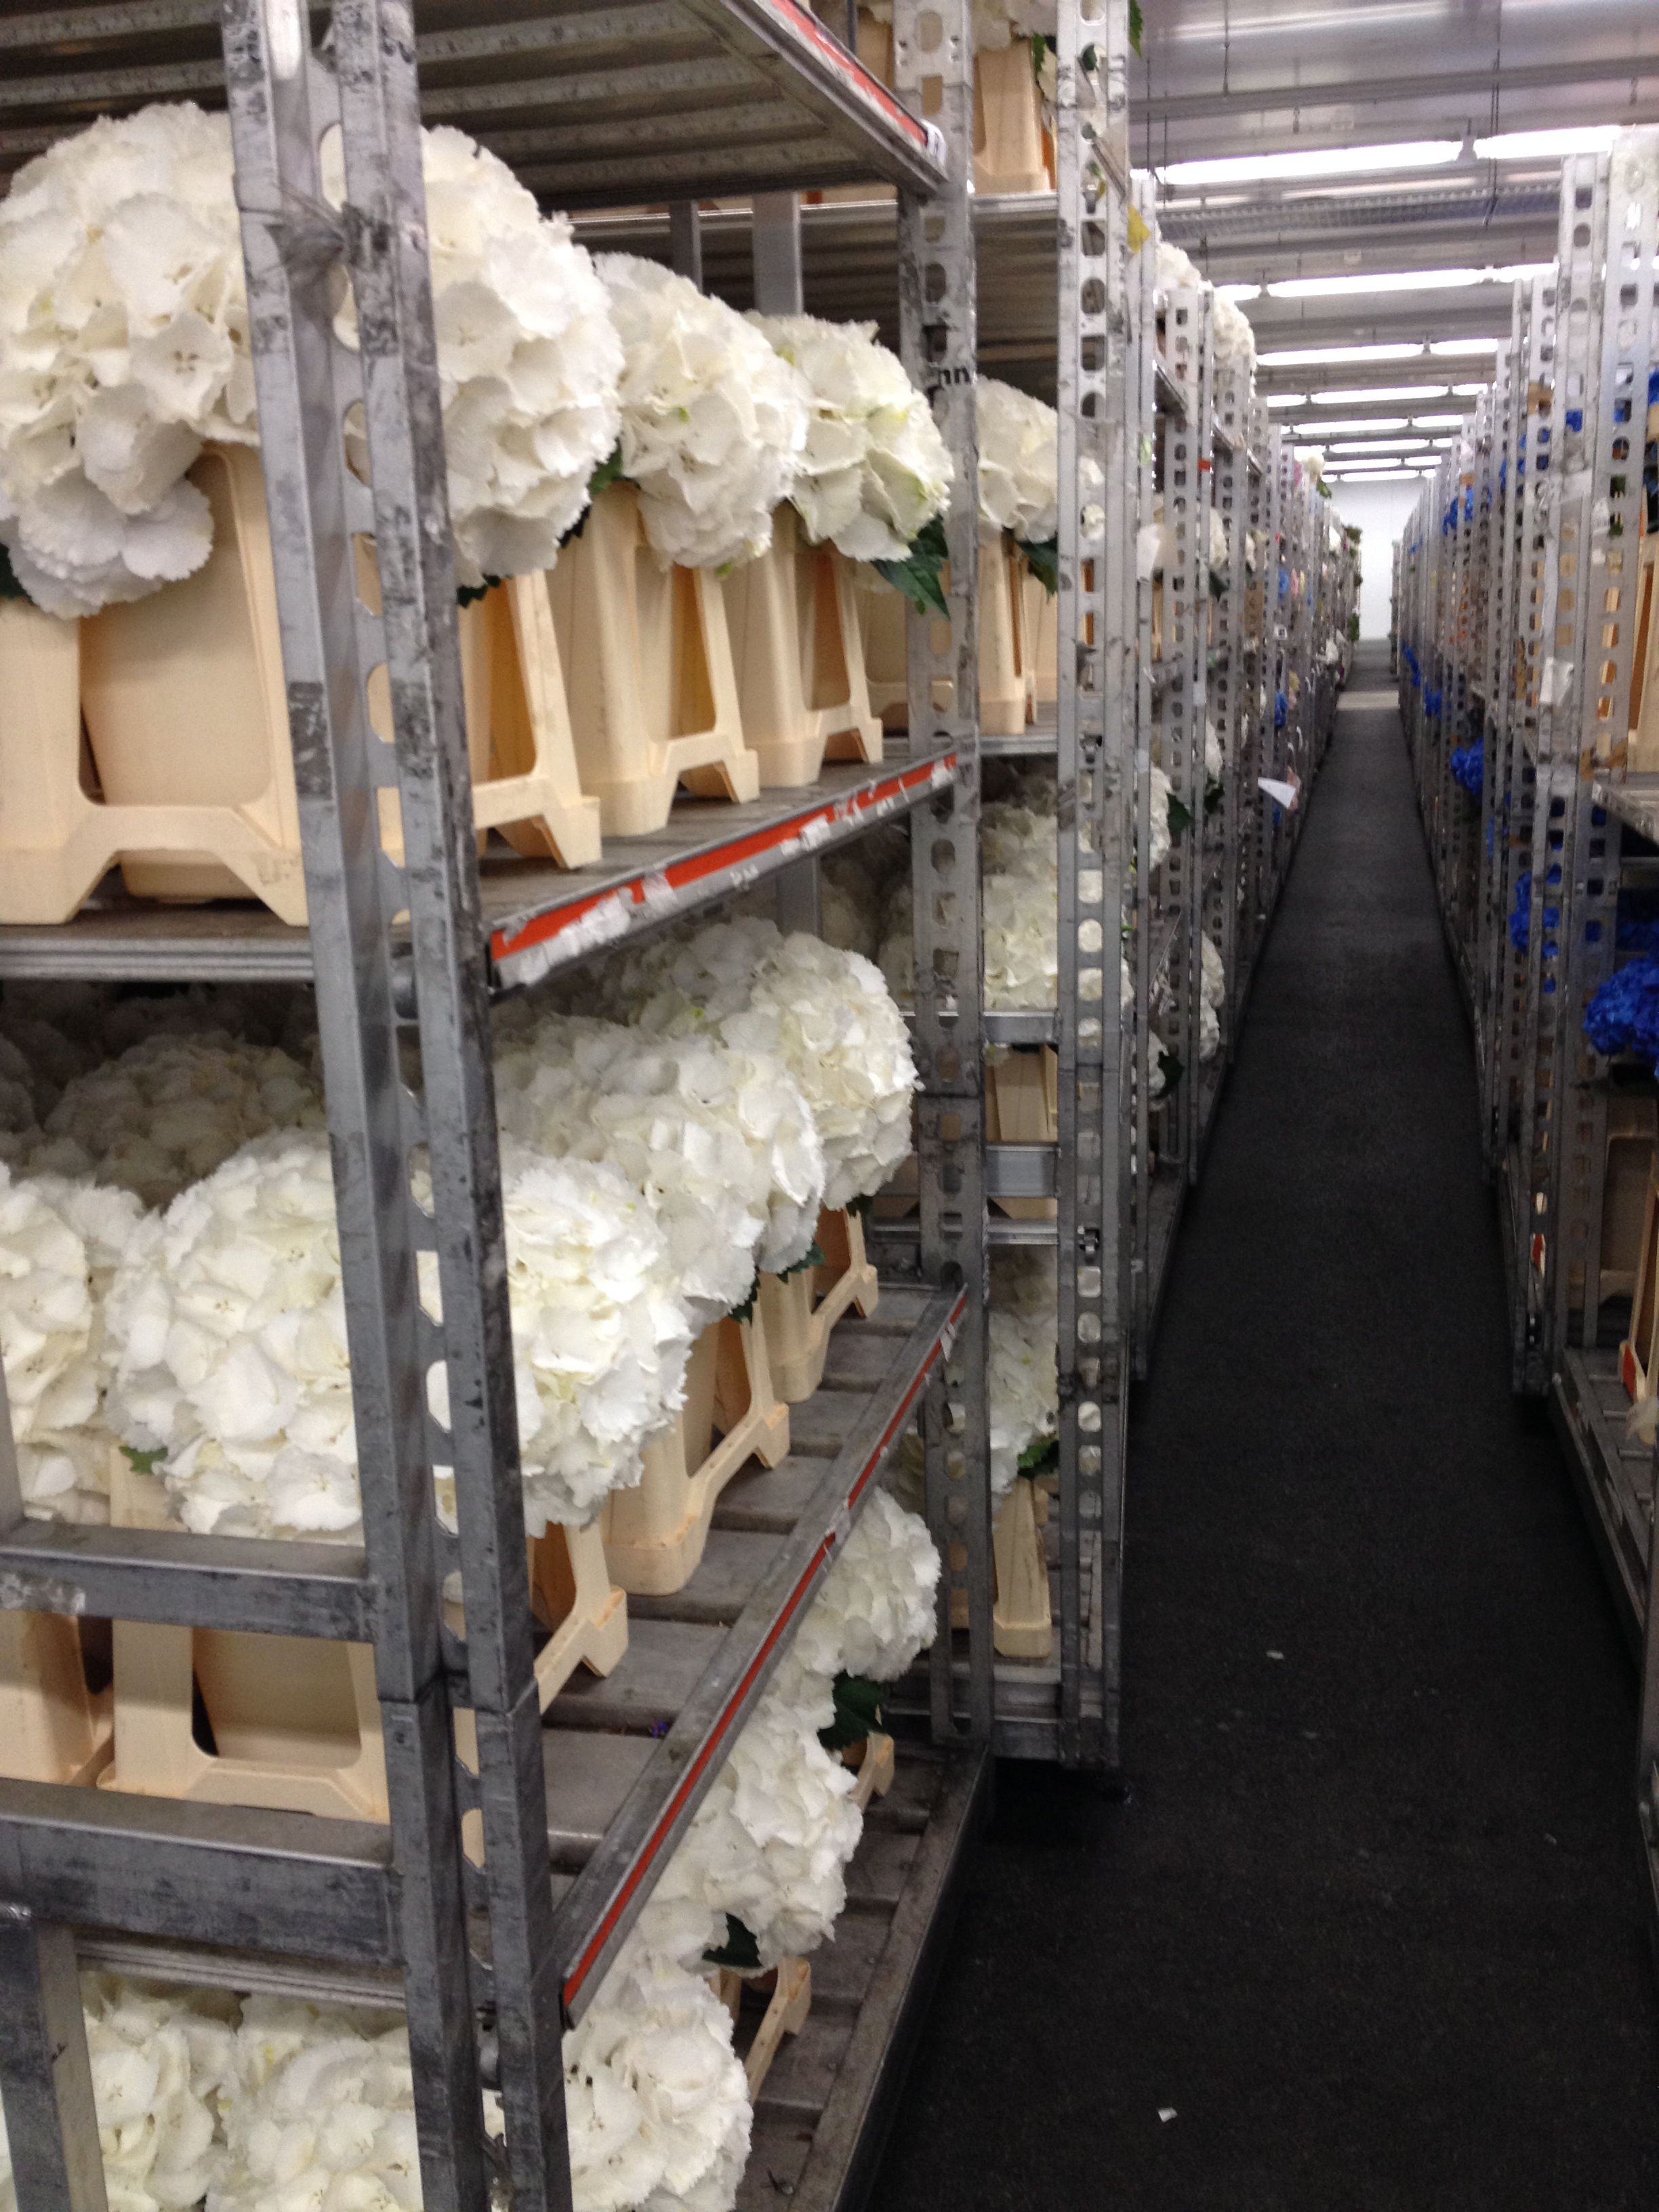 @FloraHolland . flower auction in Aalsmeer. Our hydrangeas Schneeball along with many others in line to wait for auction. (Rob van Mastwijk)